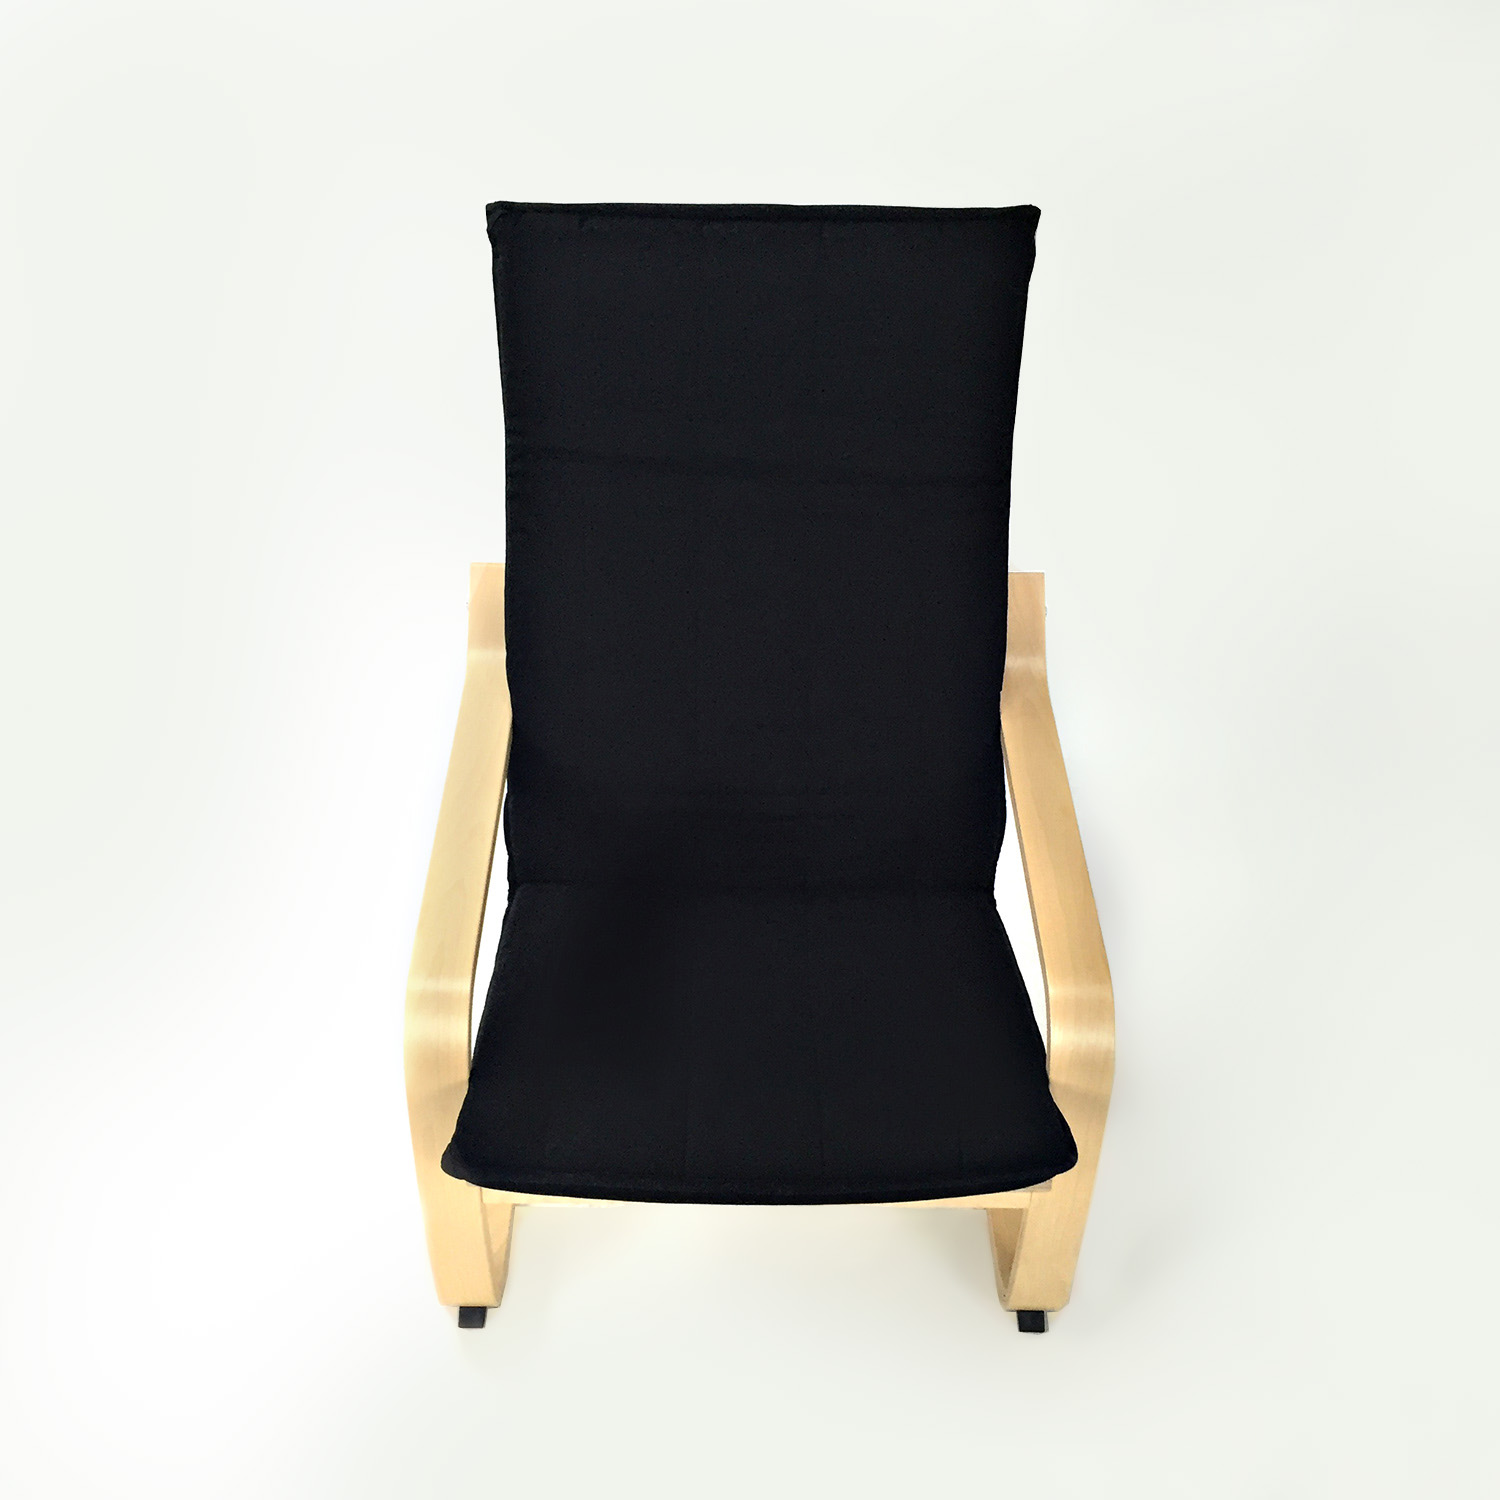 ALME Black Accent Chair IKEA